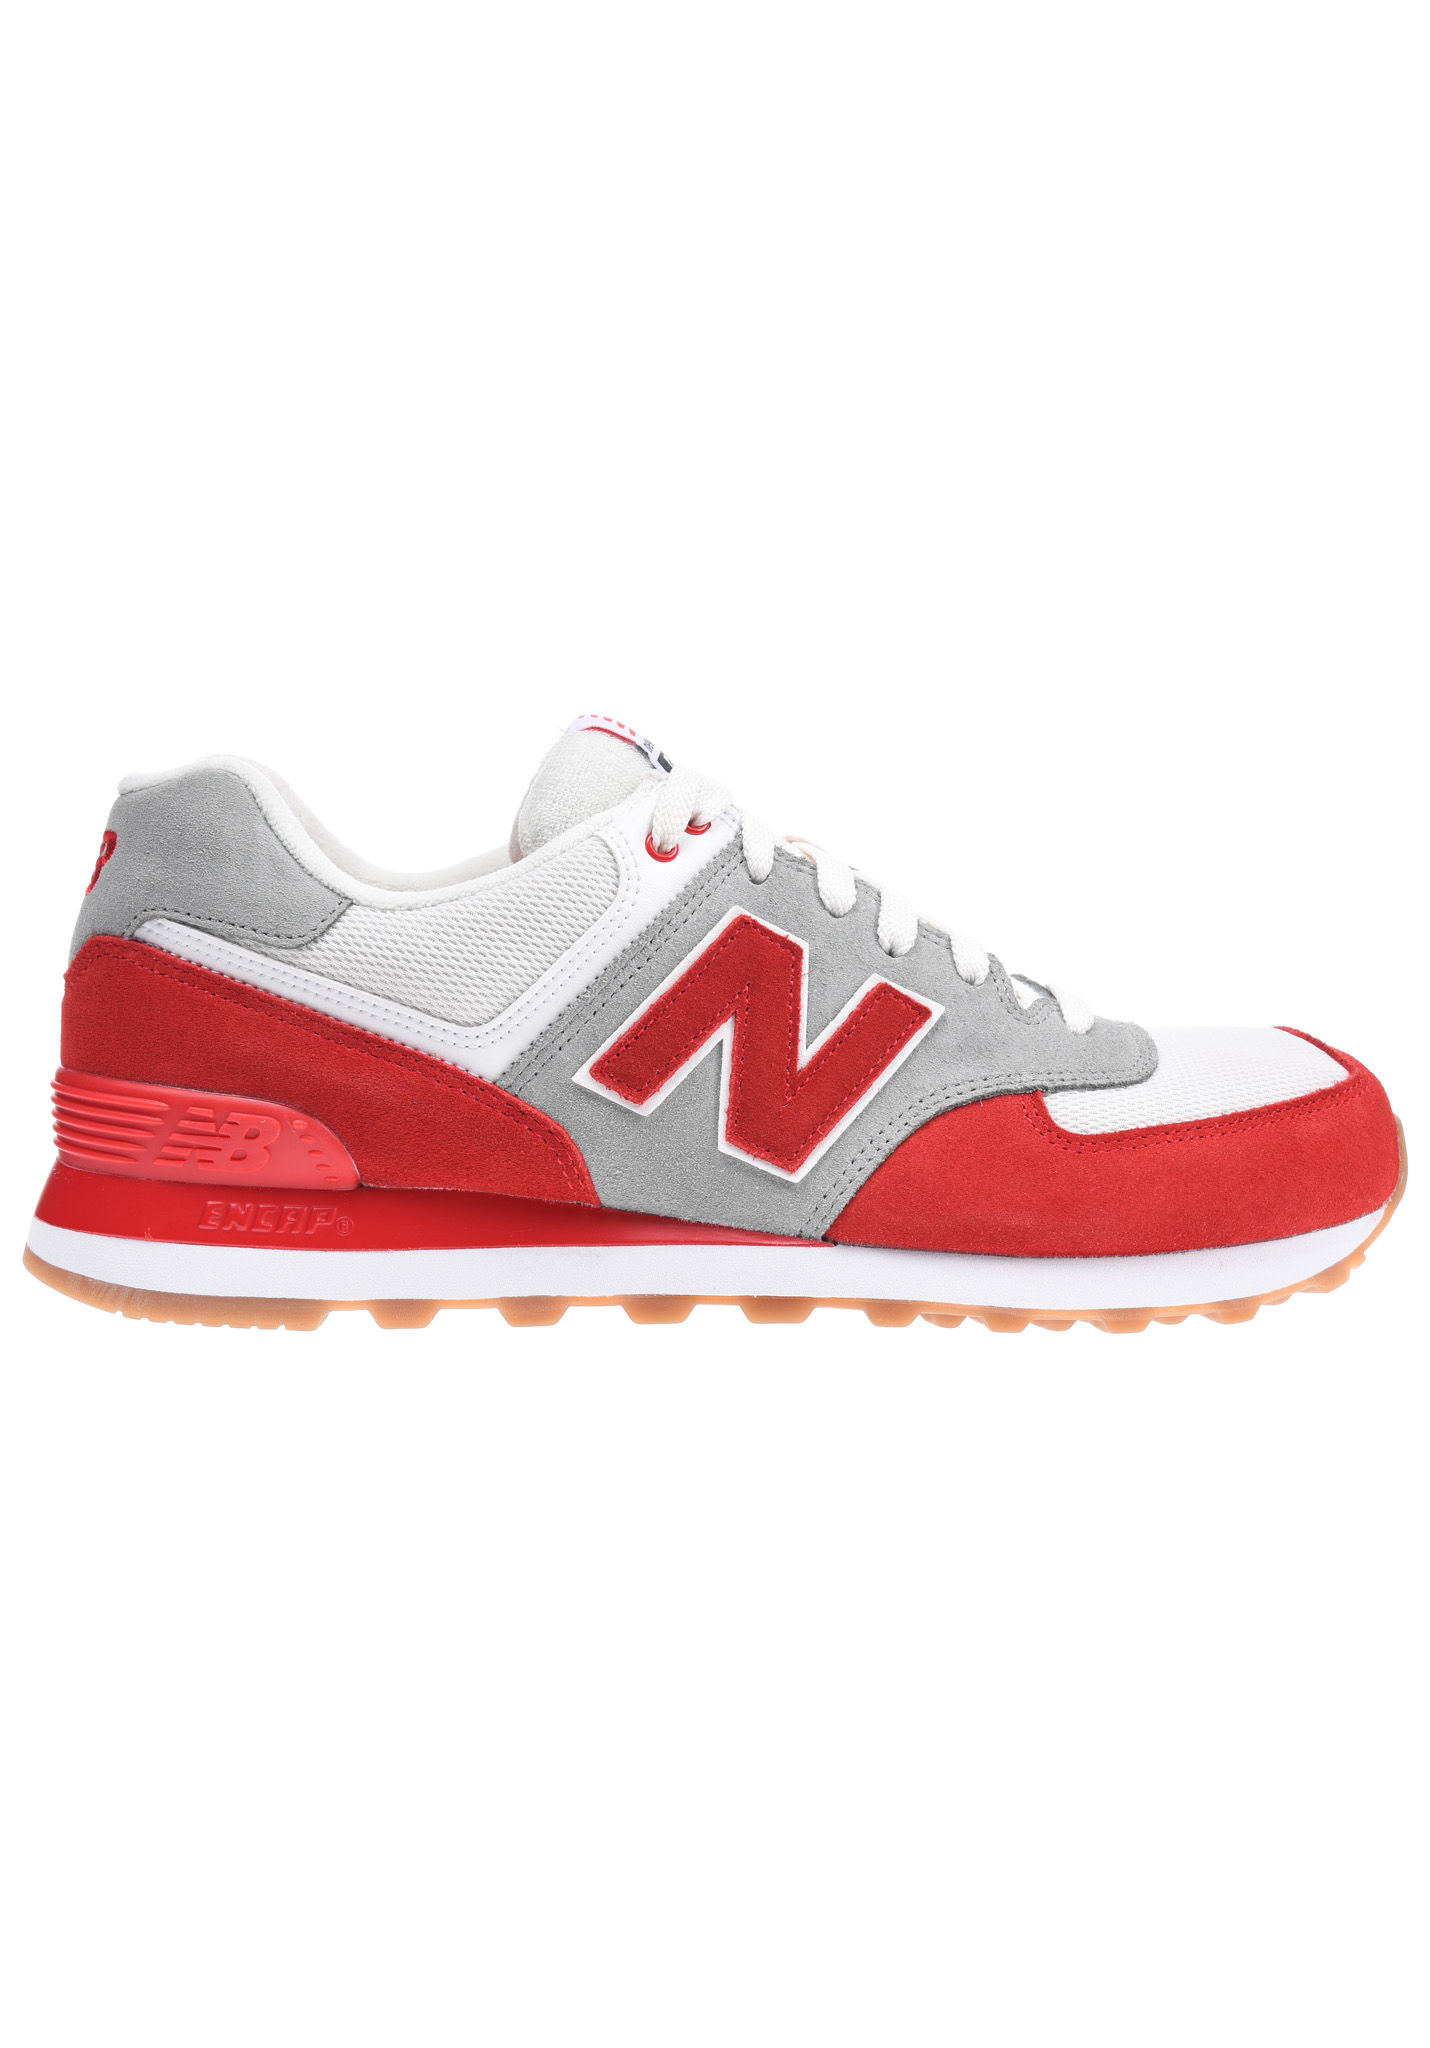 365bf2299a9 NEW BALANCE ML574 D - Sneakers for Men - Red